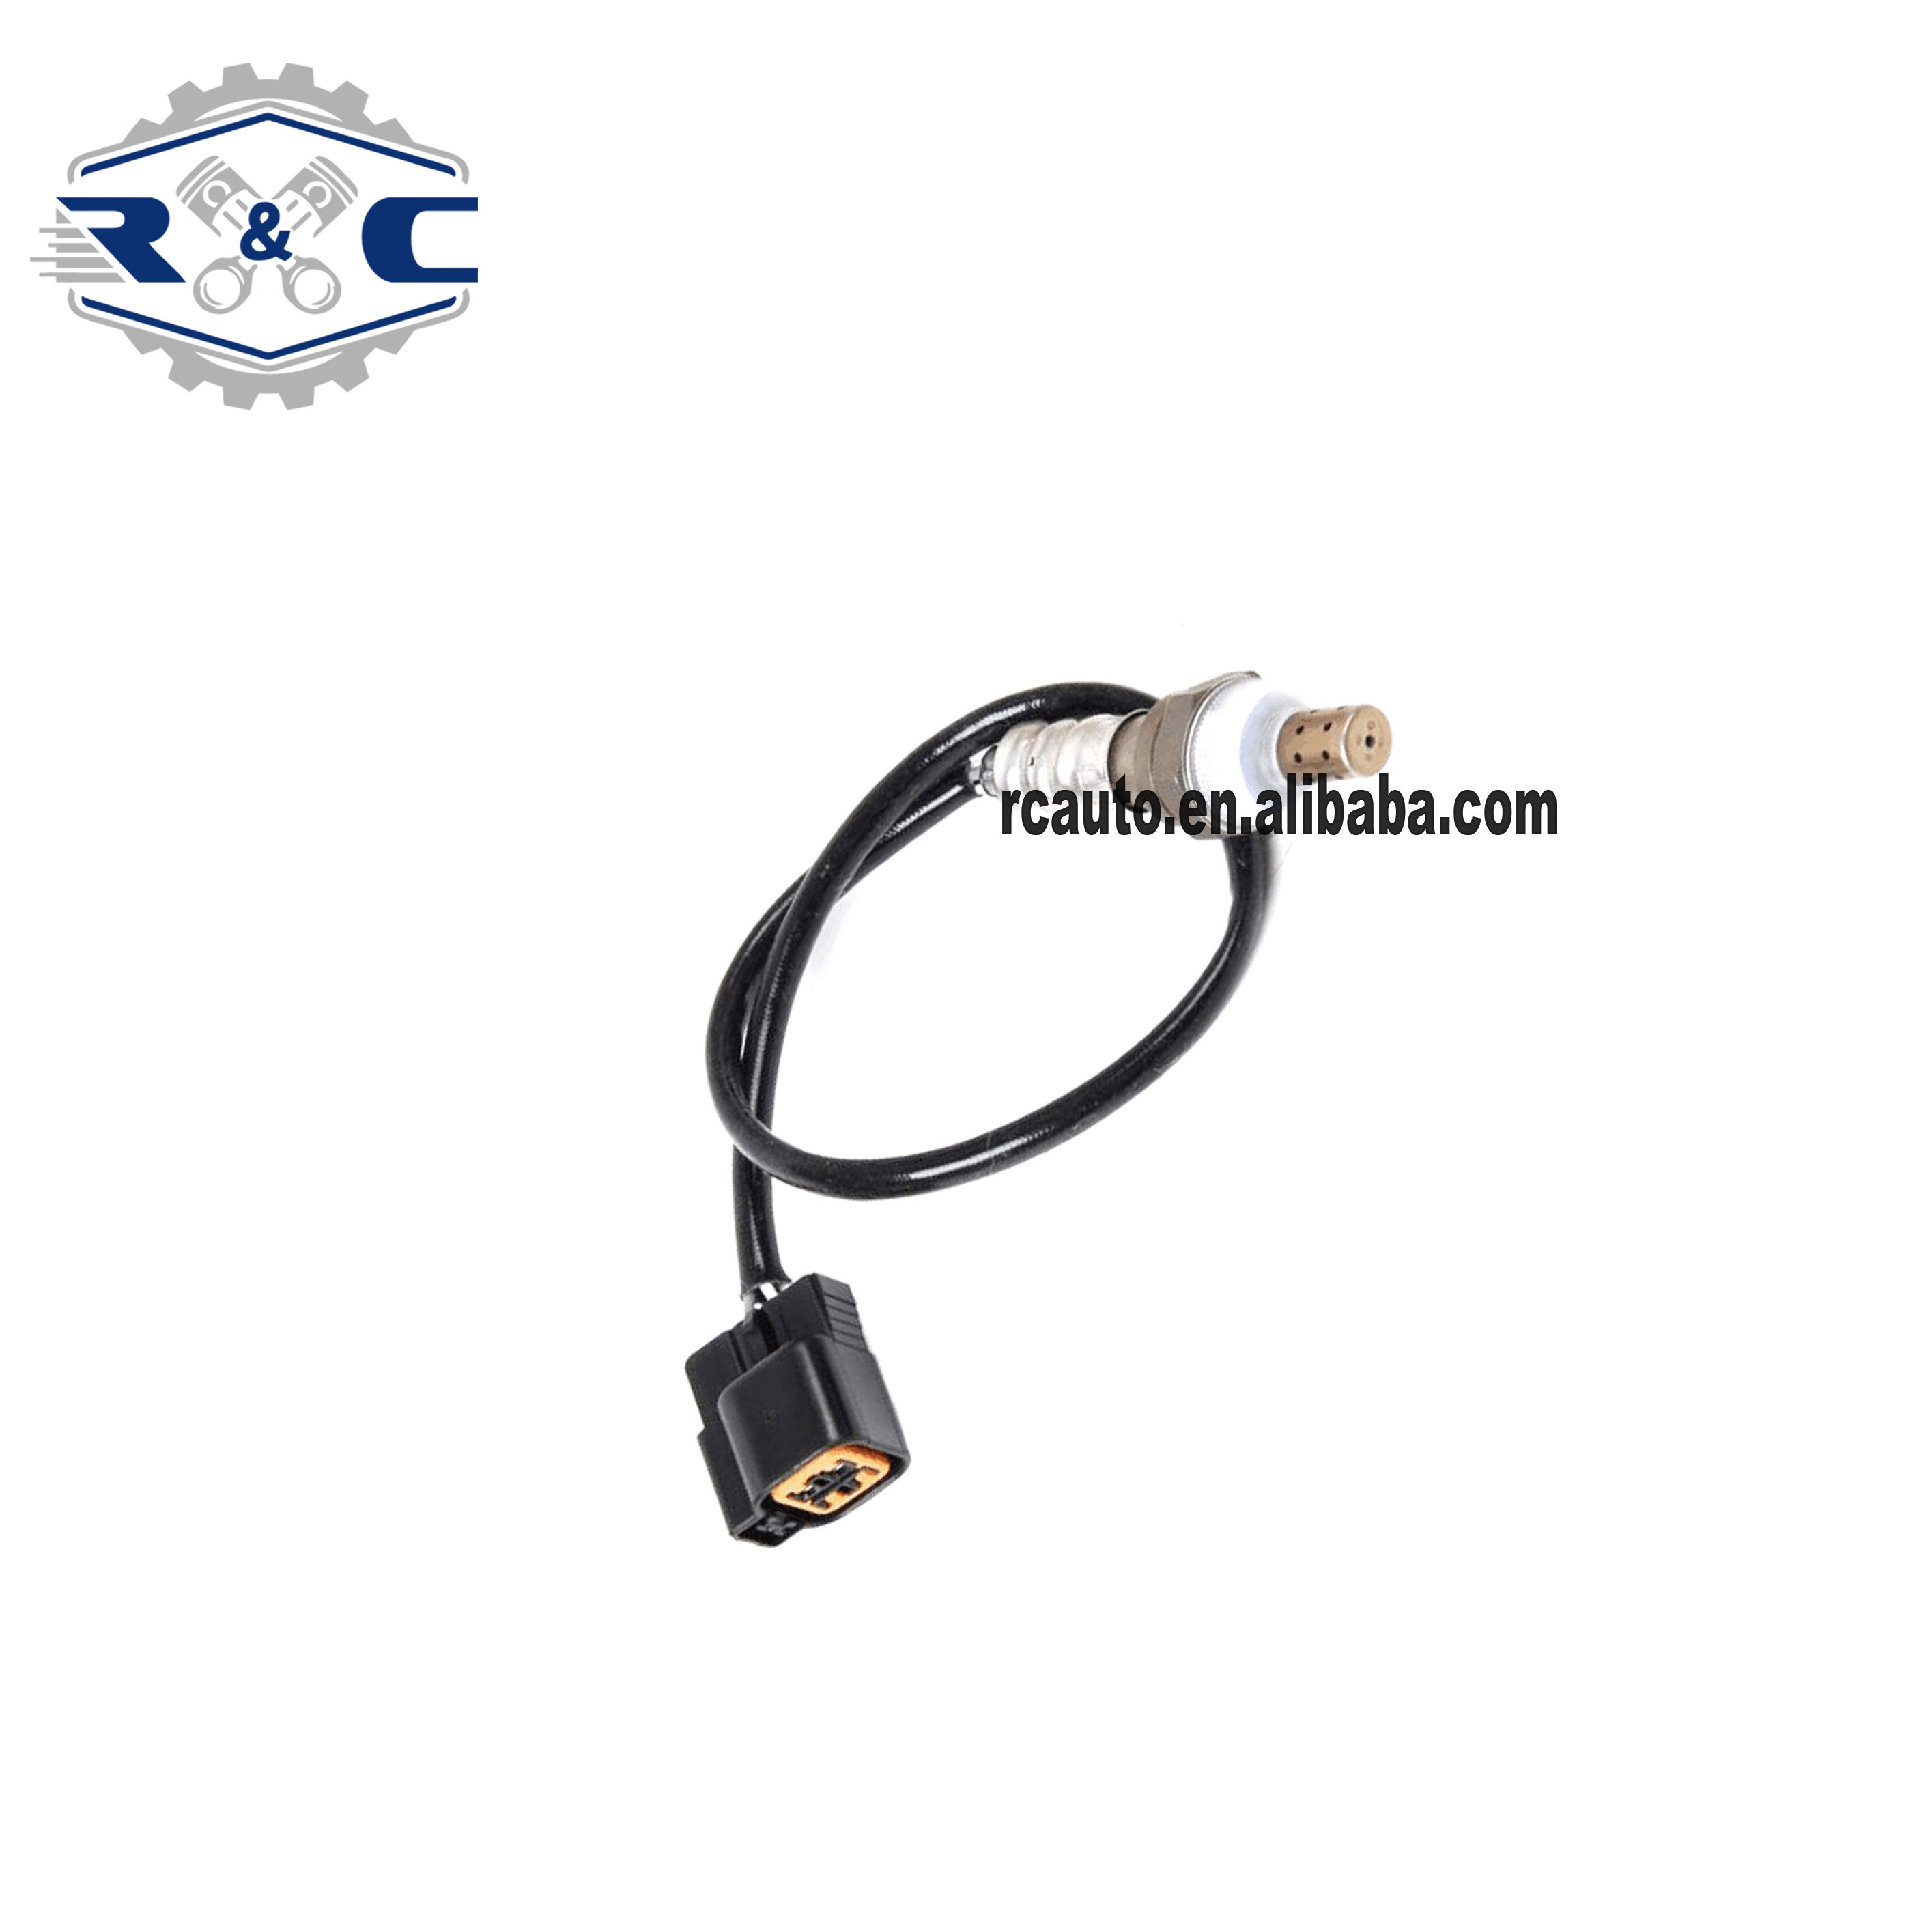 R&C High Quality Sonda Lambda 39210-23710 For Hyundai Accent Elantra Tiburon Kia Sportage M8617 Air Fuel sensor